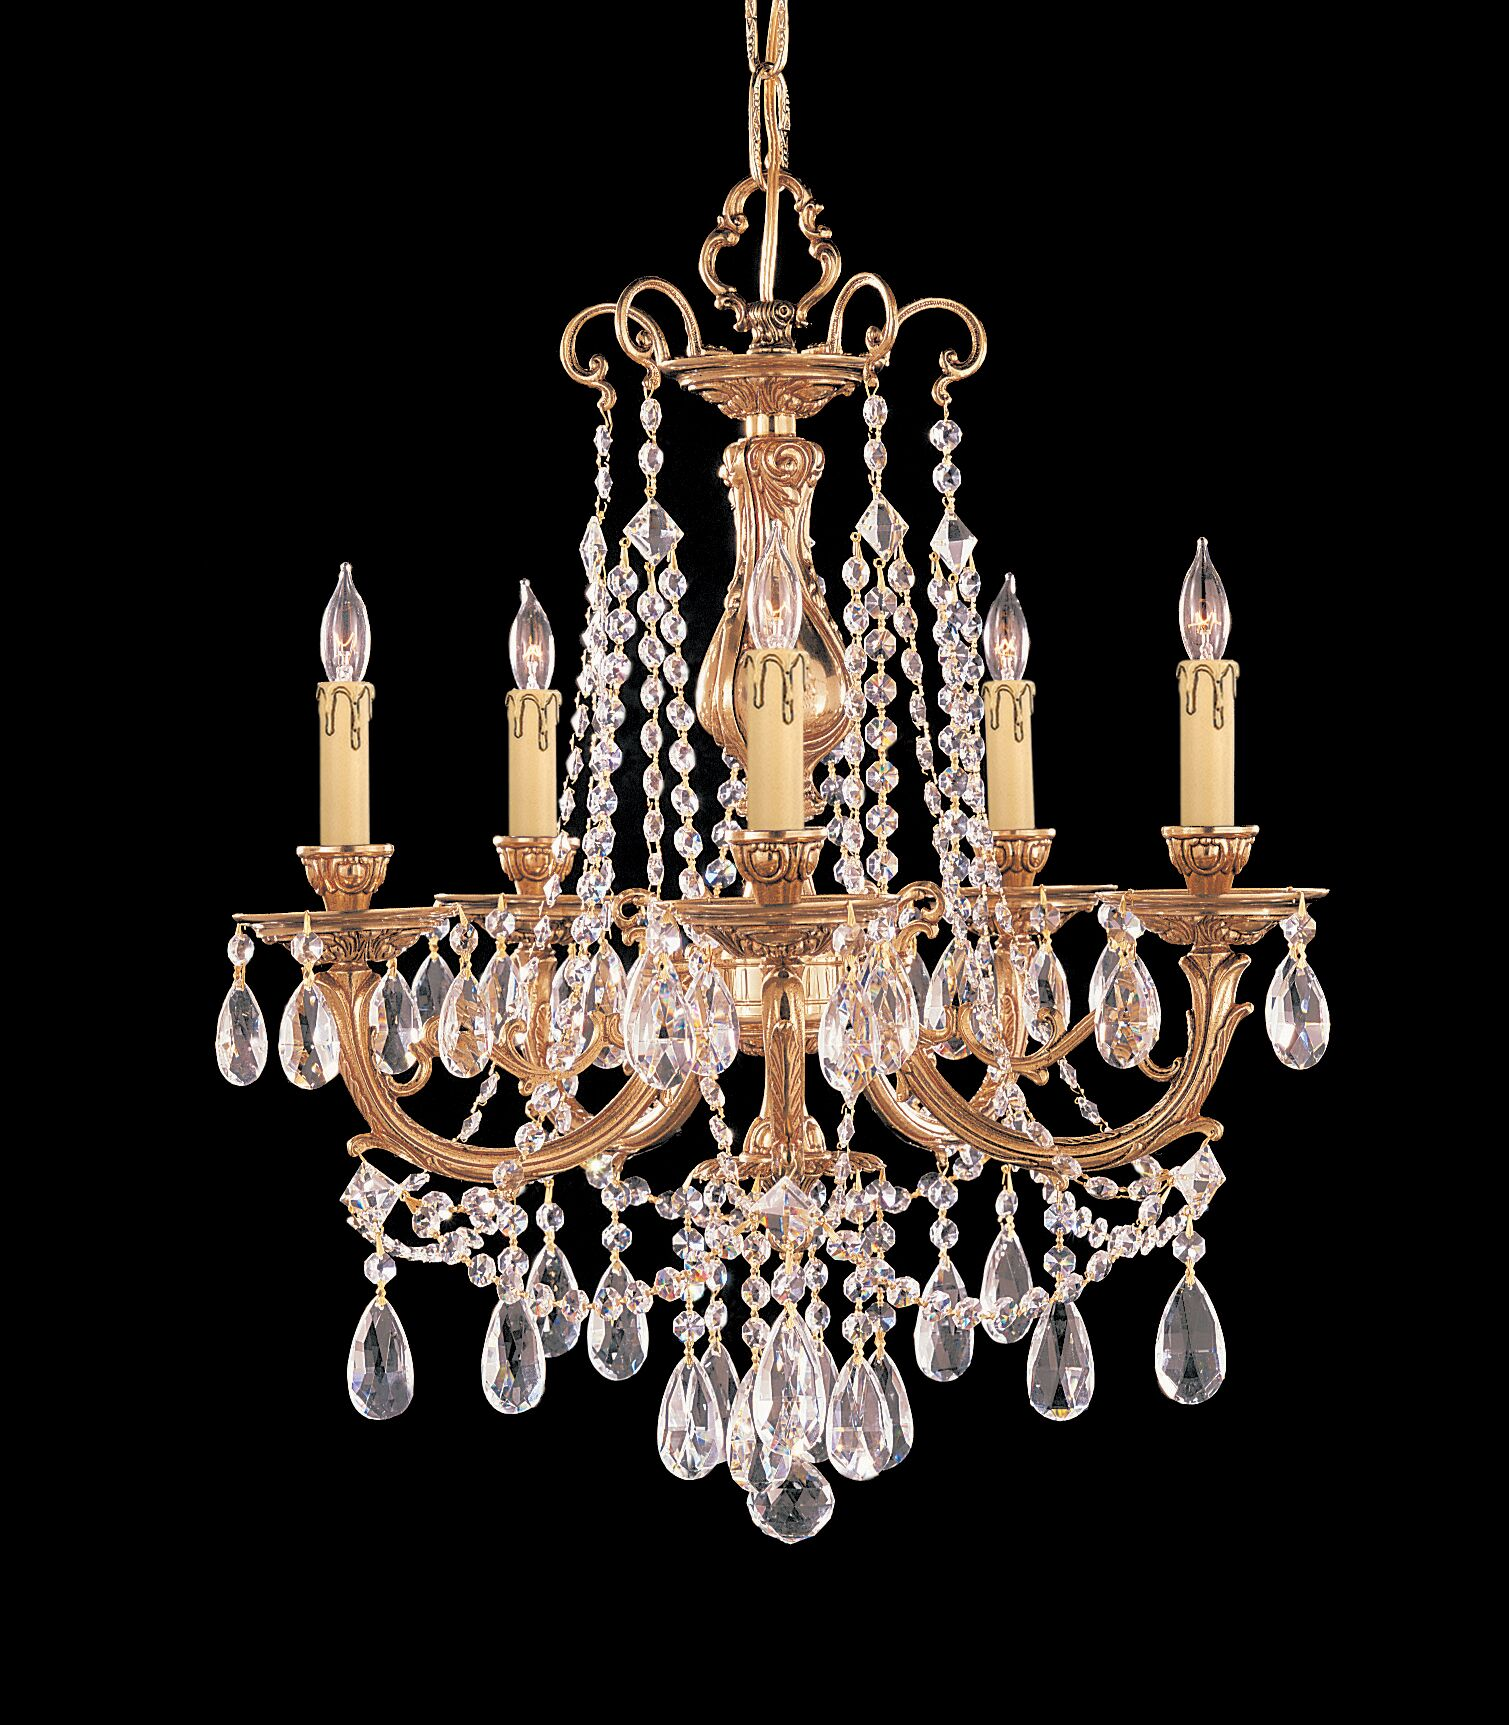 Aureolin 5-Light Crystal Chandelier Crystal: Swarovski Spectra